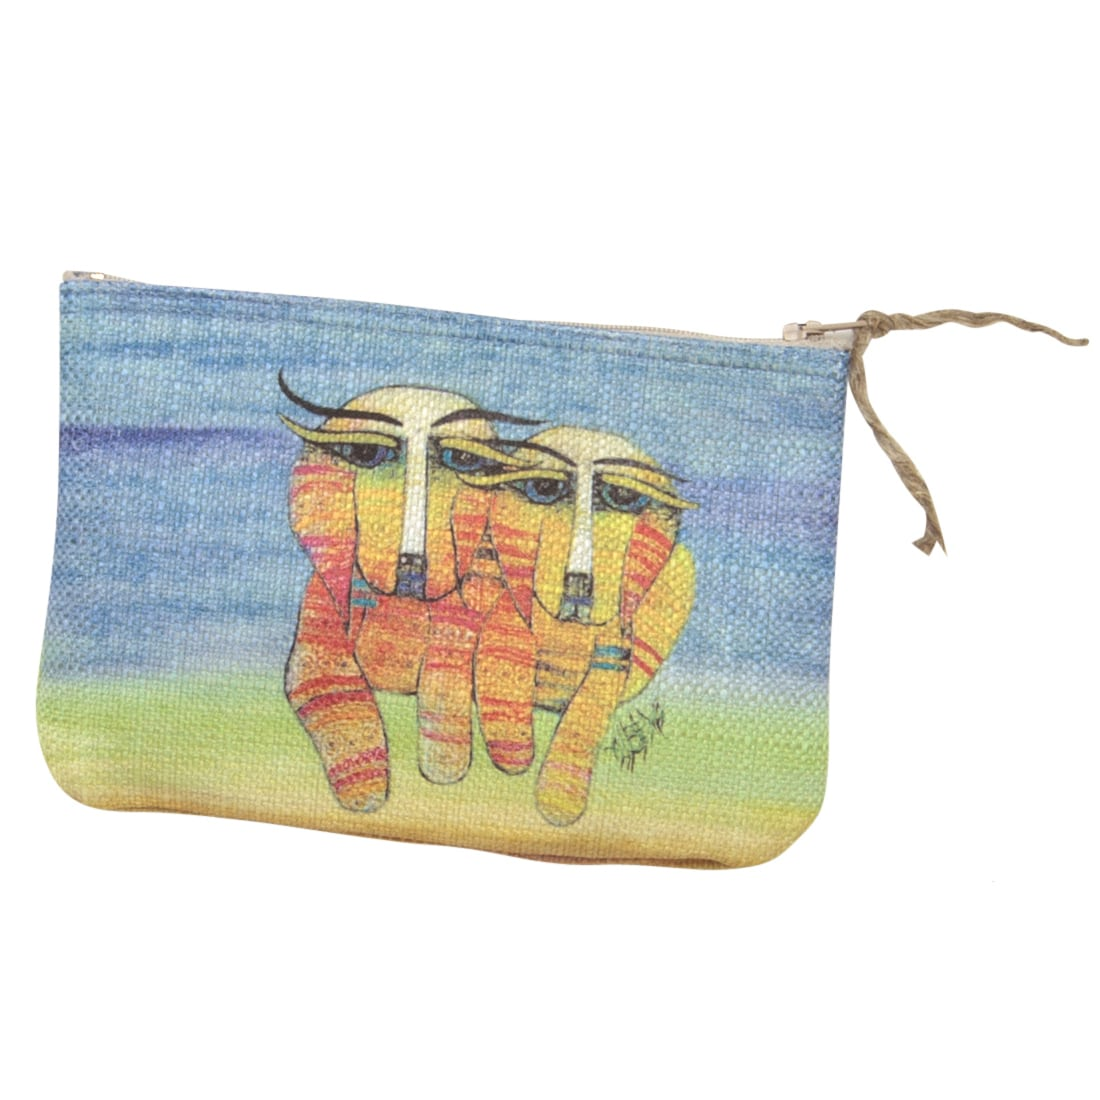 Dog Totes for Dog Lovers - Purse / Cosmetic Bag with Dog Art by Albena